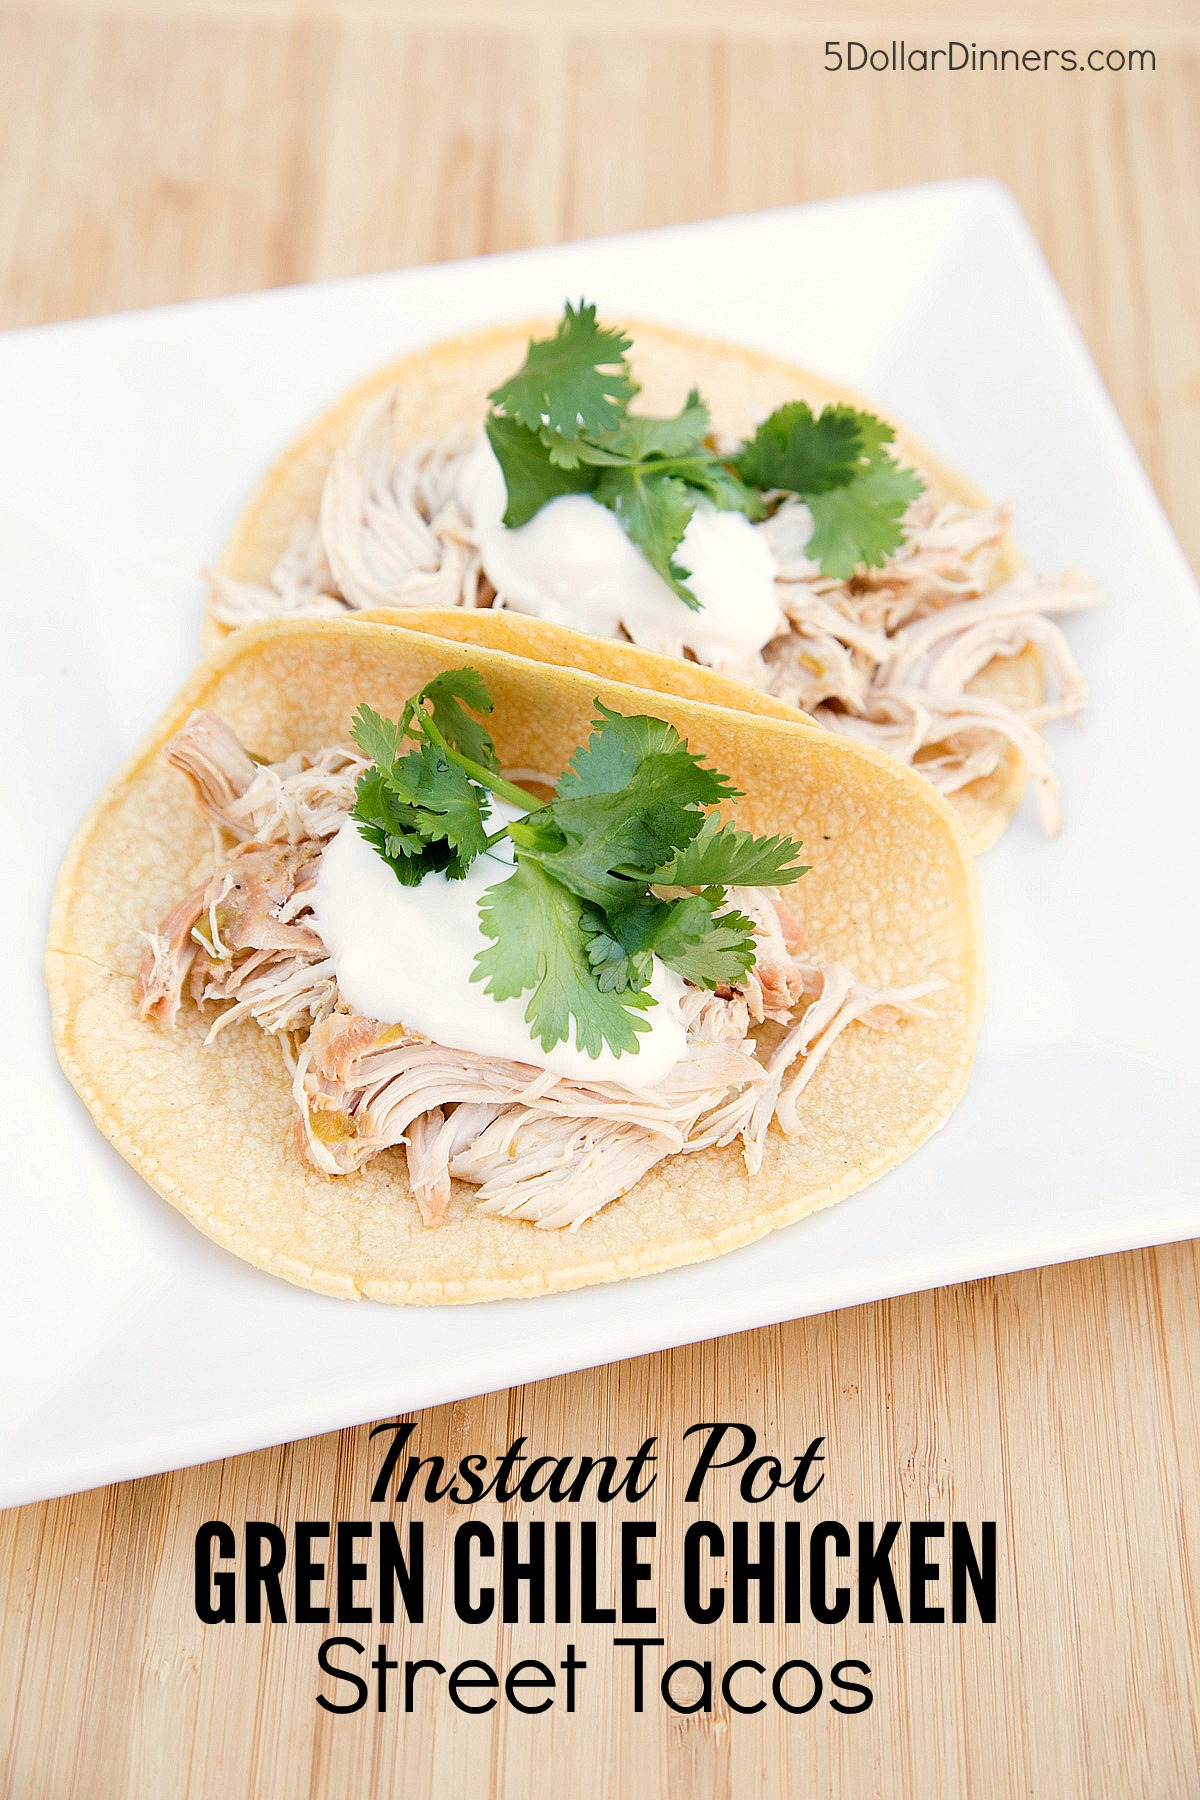 Green Chile Chicken Street Tacos